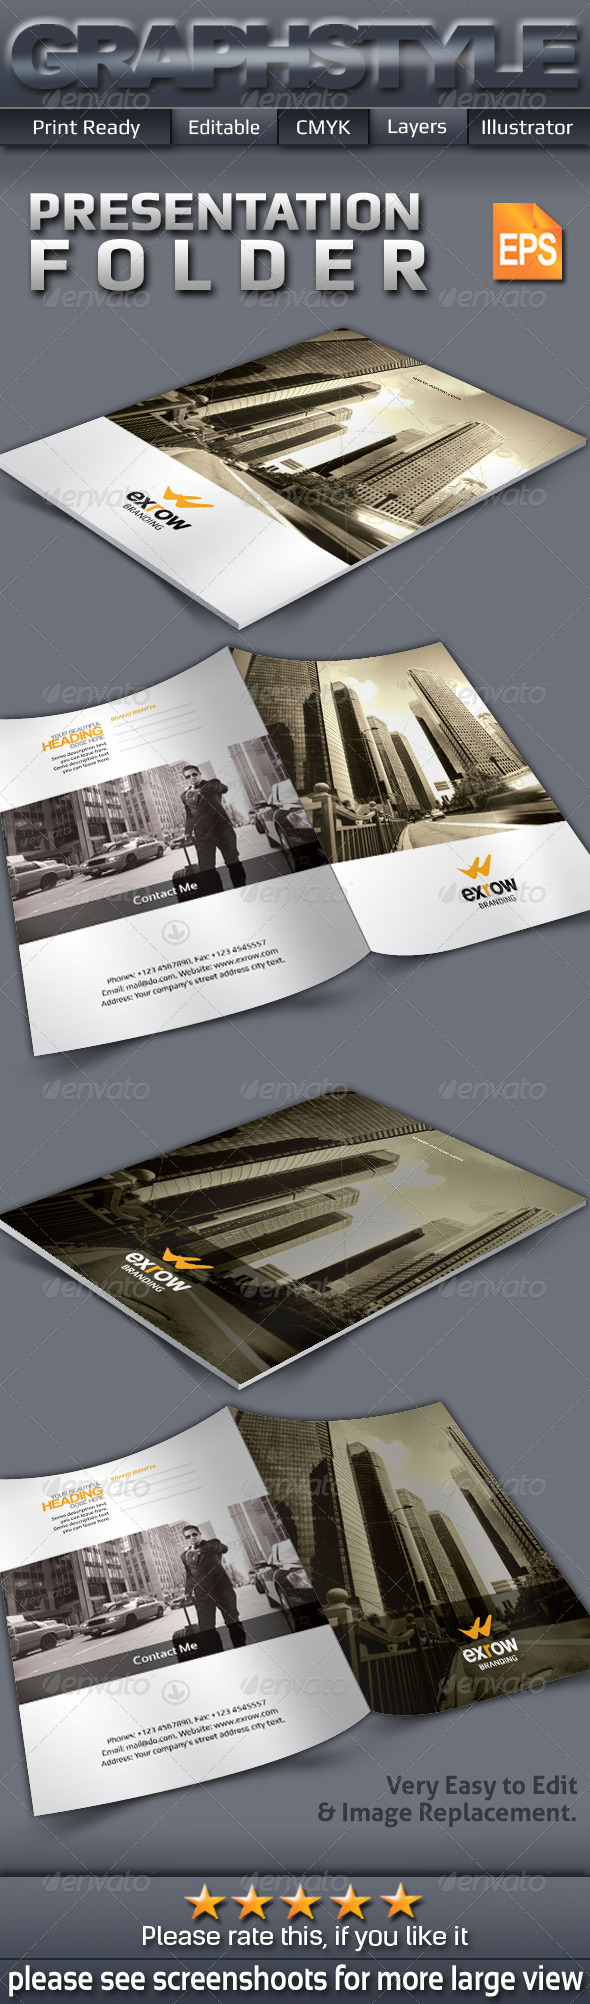 GraphicRiver Exrow Presentation Folder 7362237